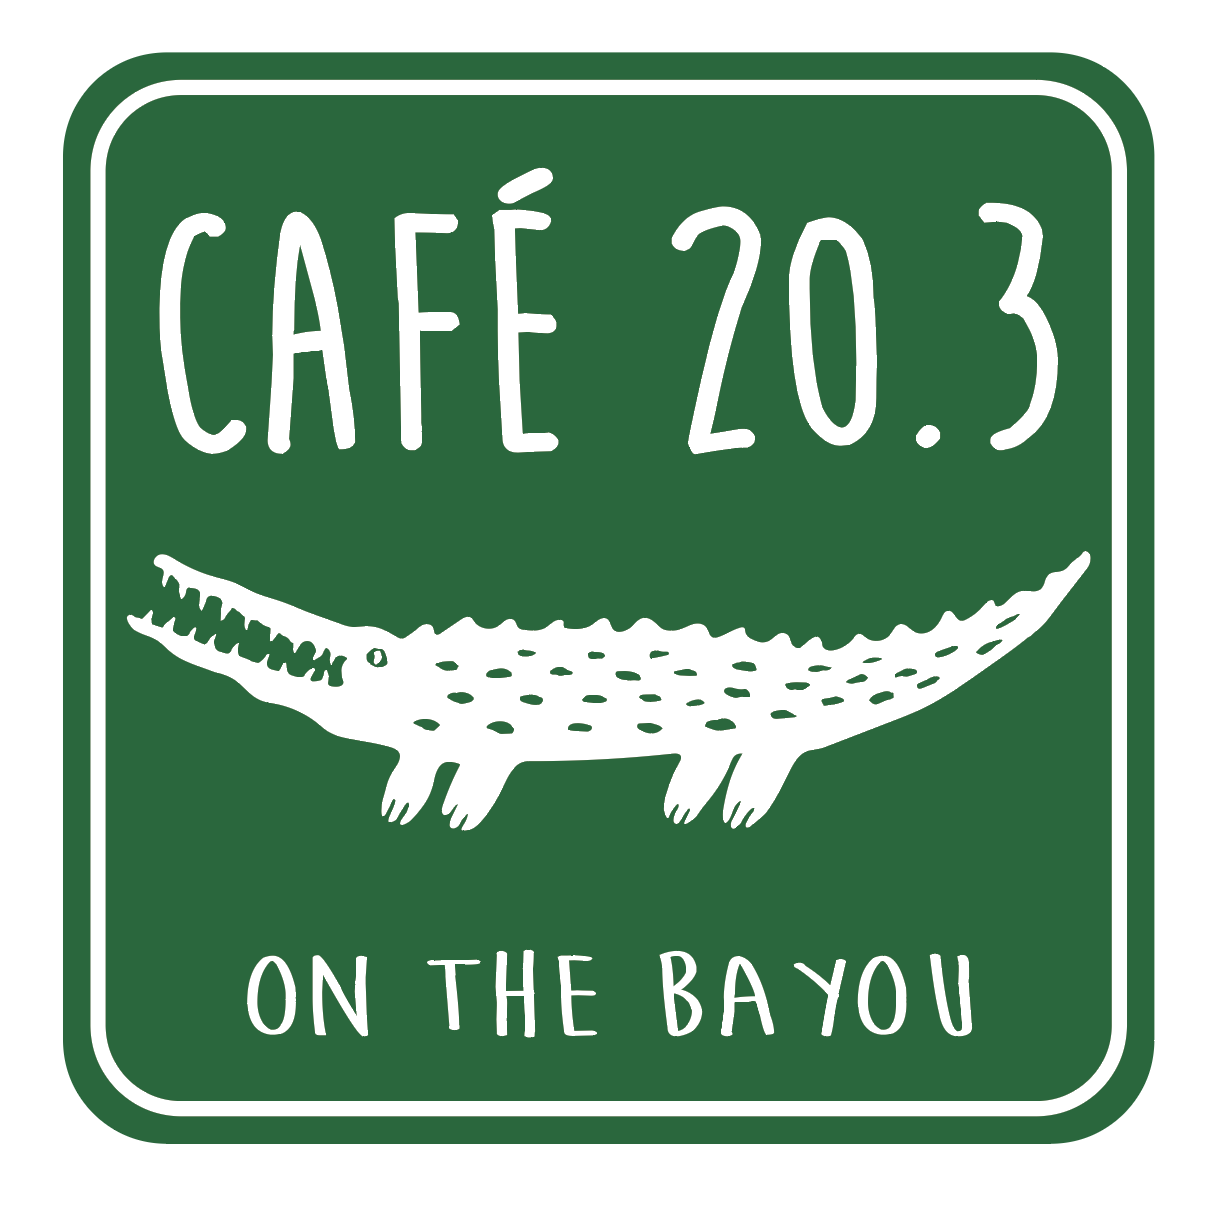 Cafe 20.3 on the Bayou